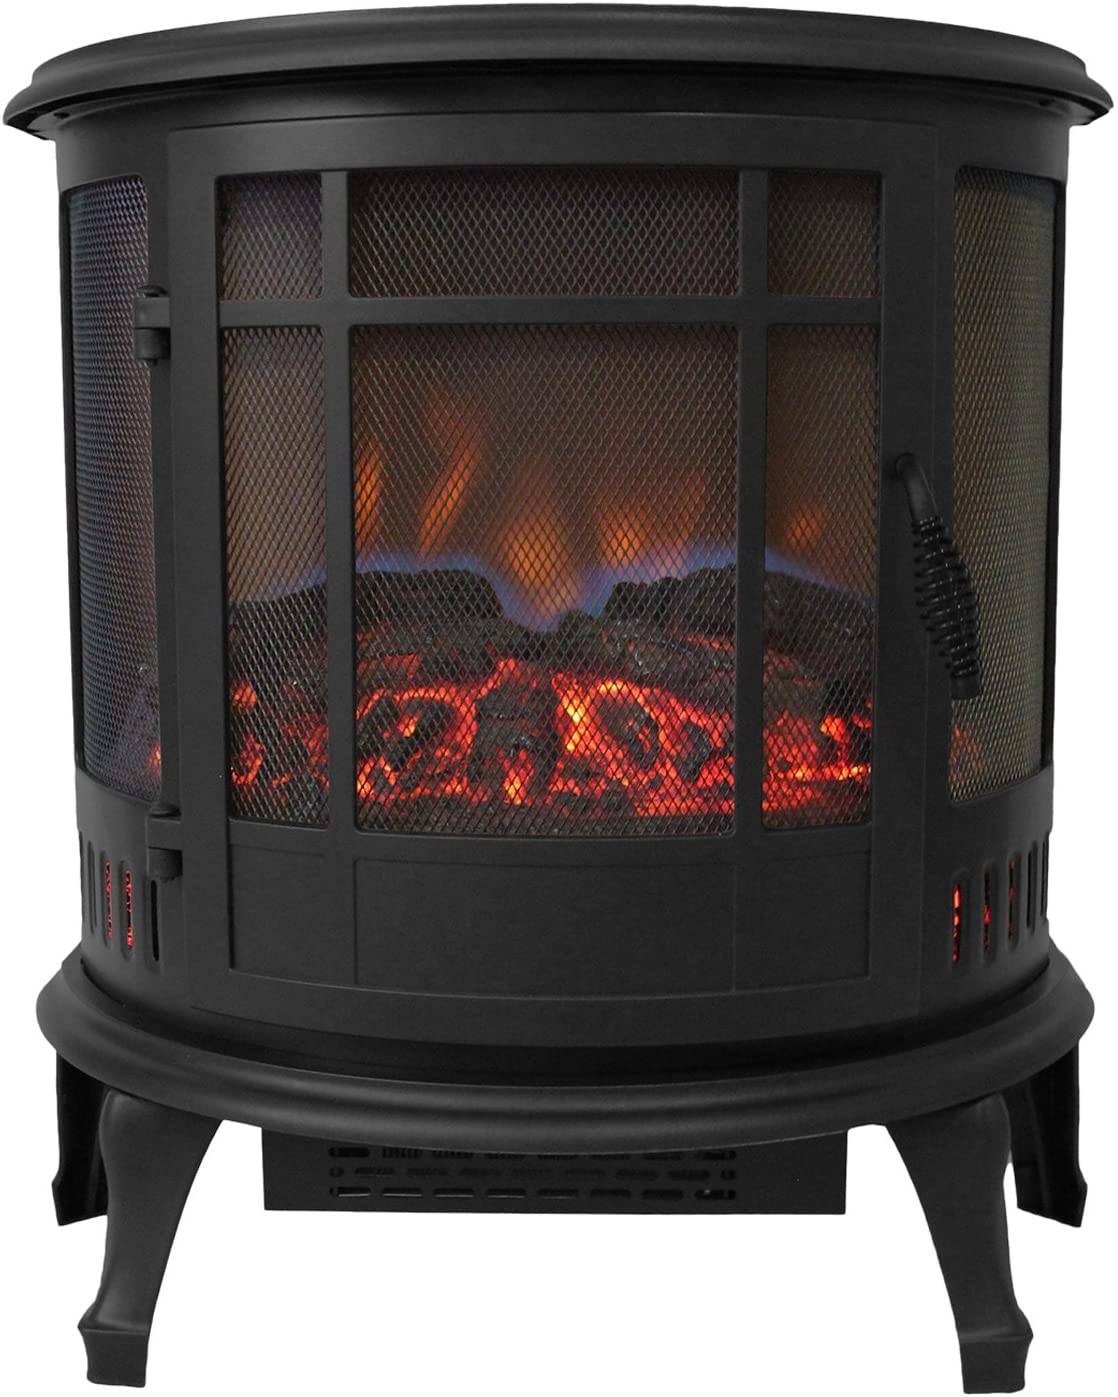 Charm Glow Electric Fireplace Lovely fort Glow the Claremont Electric Stove